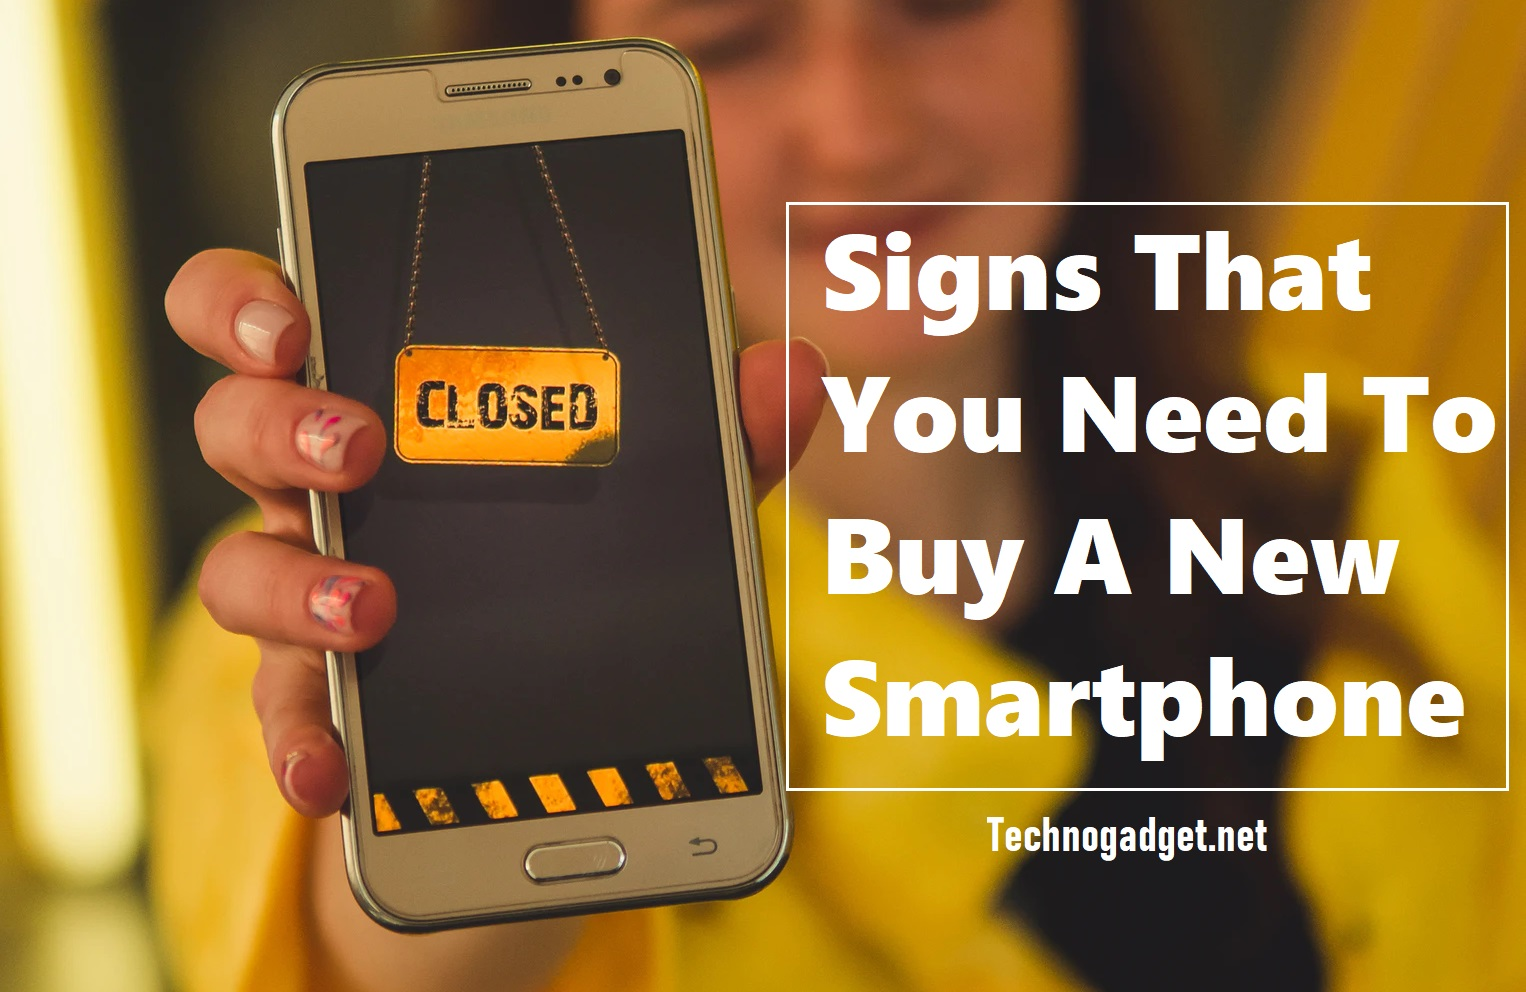 Signs That You Need To Buy A New Smartphone